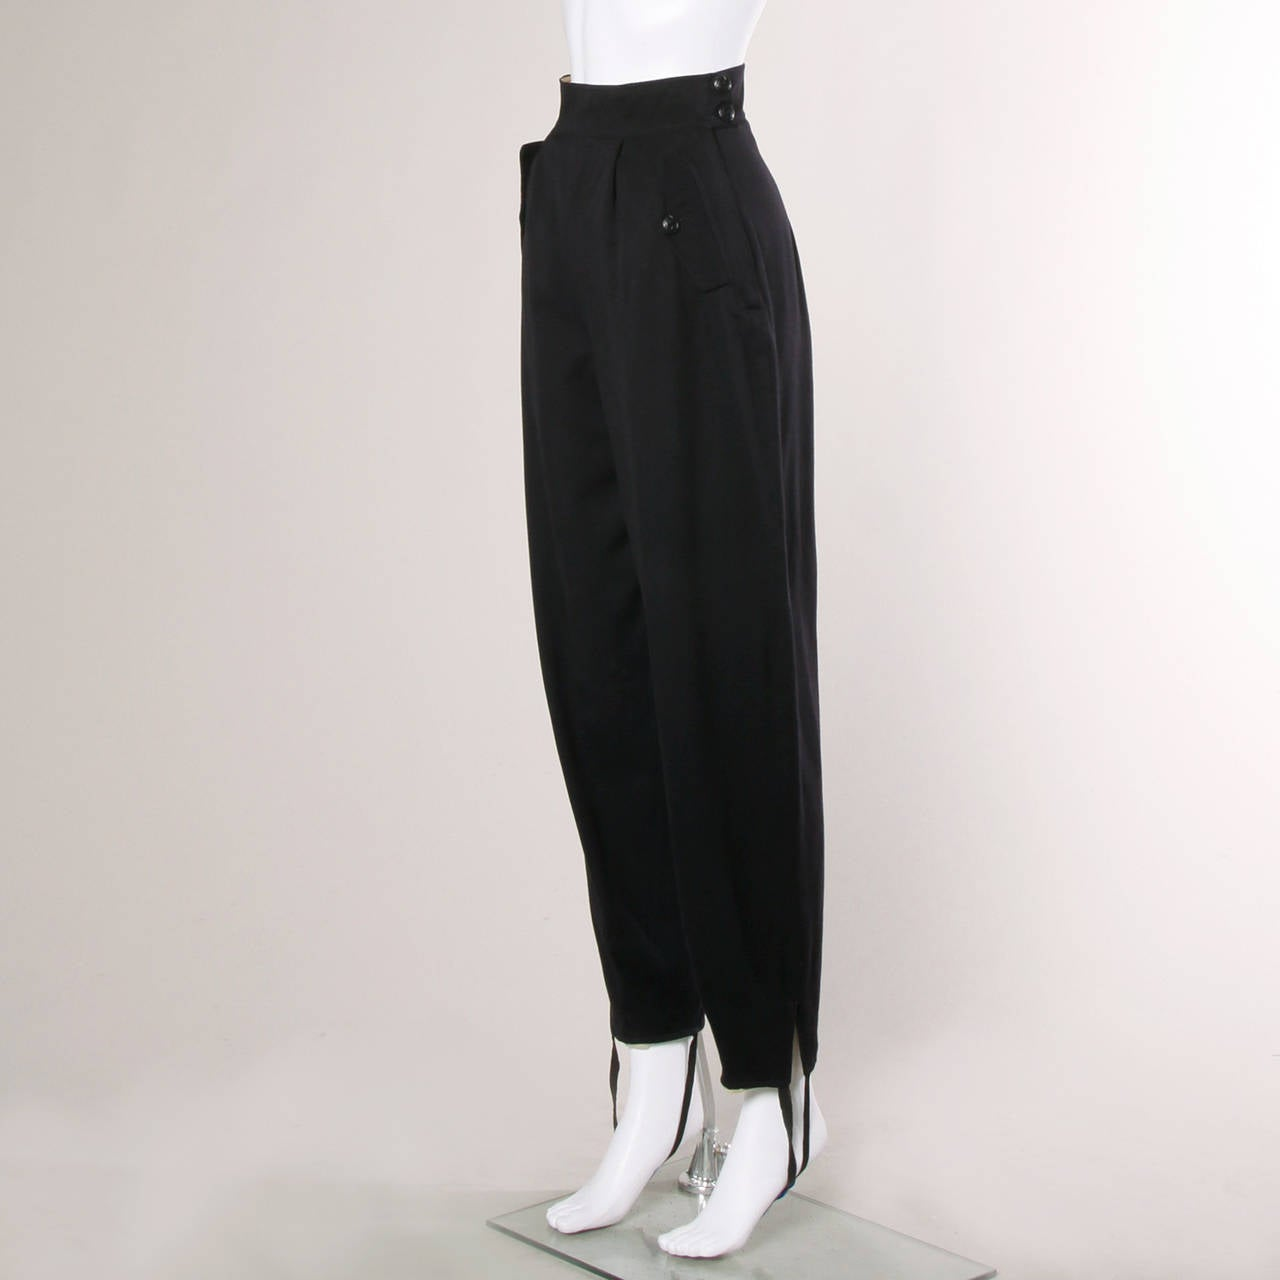 1940s Vintage Navy Blue Wool High Waisted Riding Pants with Stirrups 2